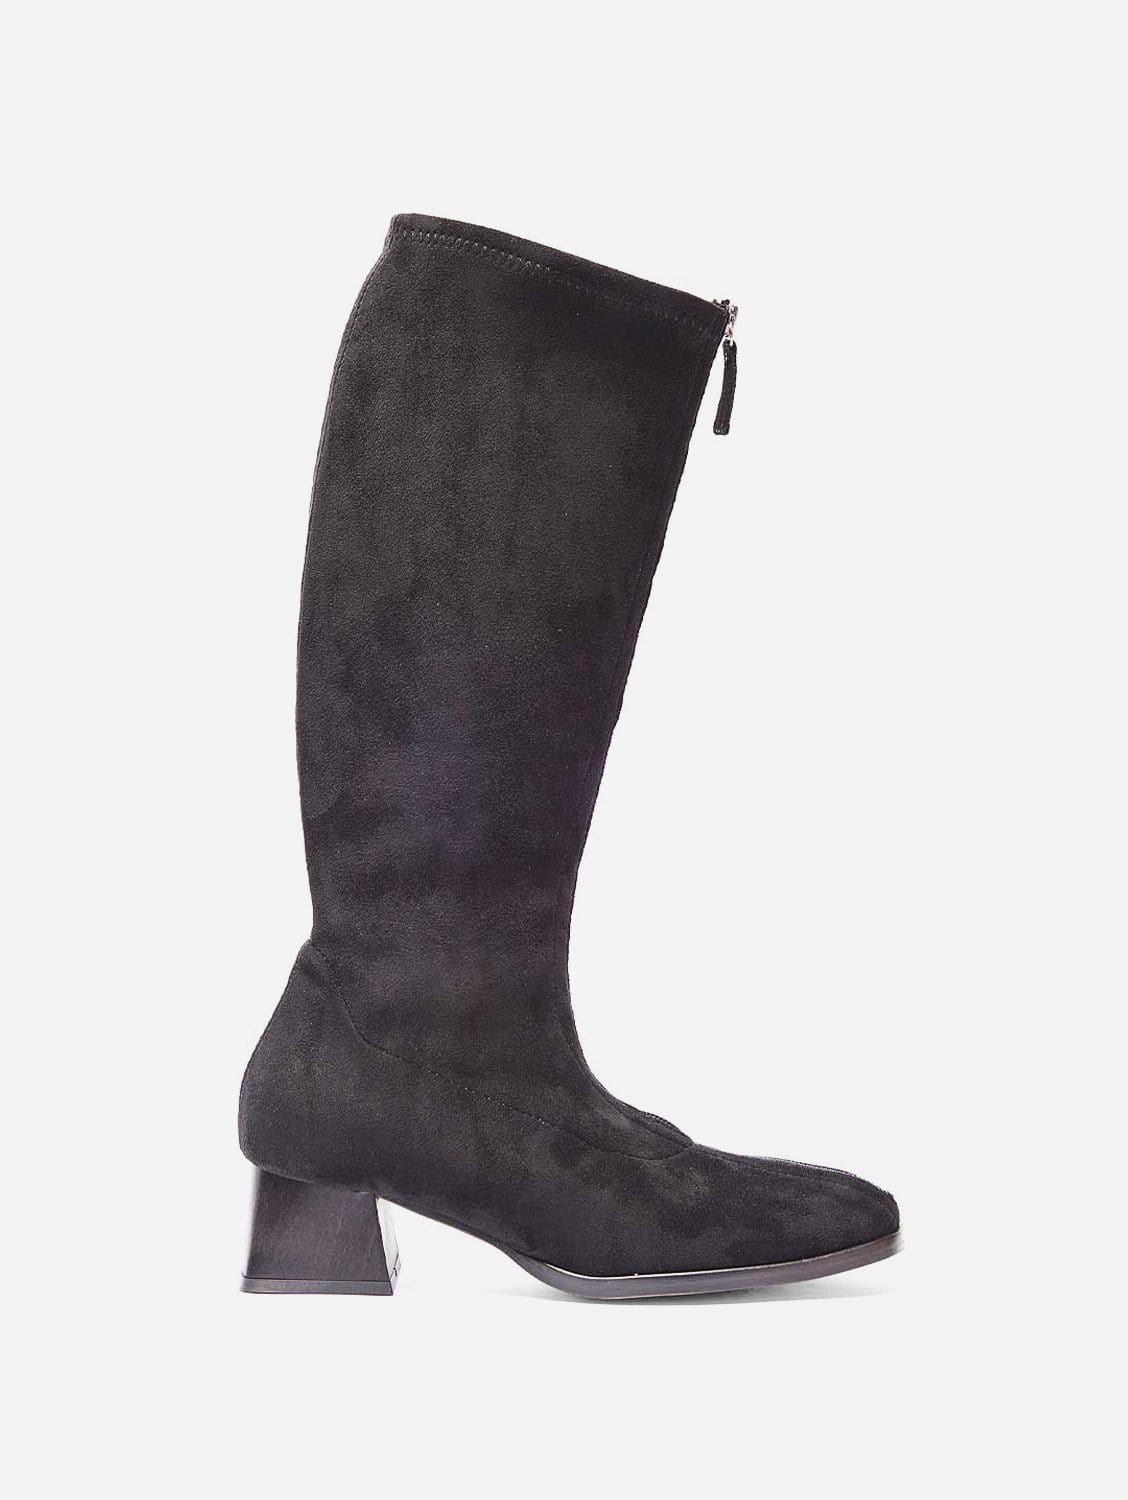 Leticia Recycled Polyester Vegan Suede Knee Boots   Black